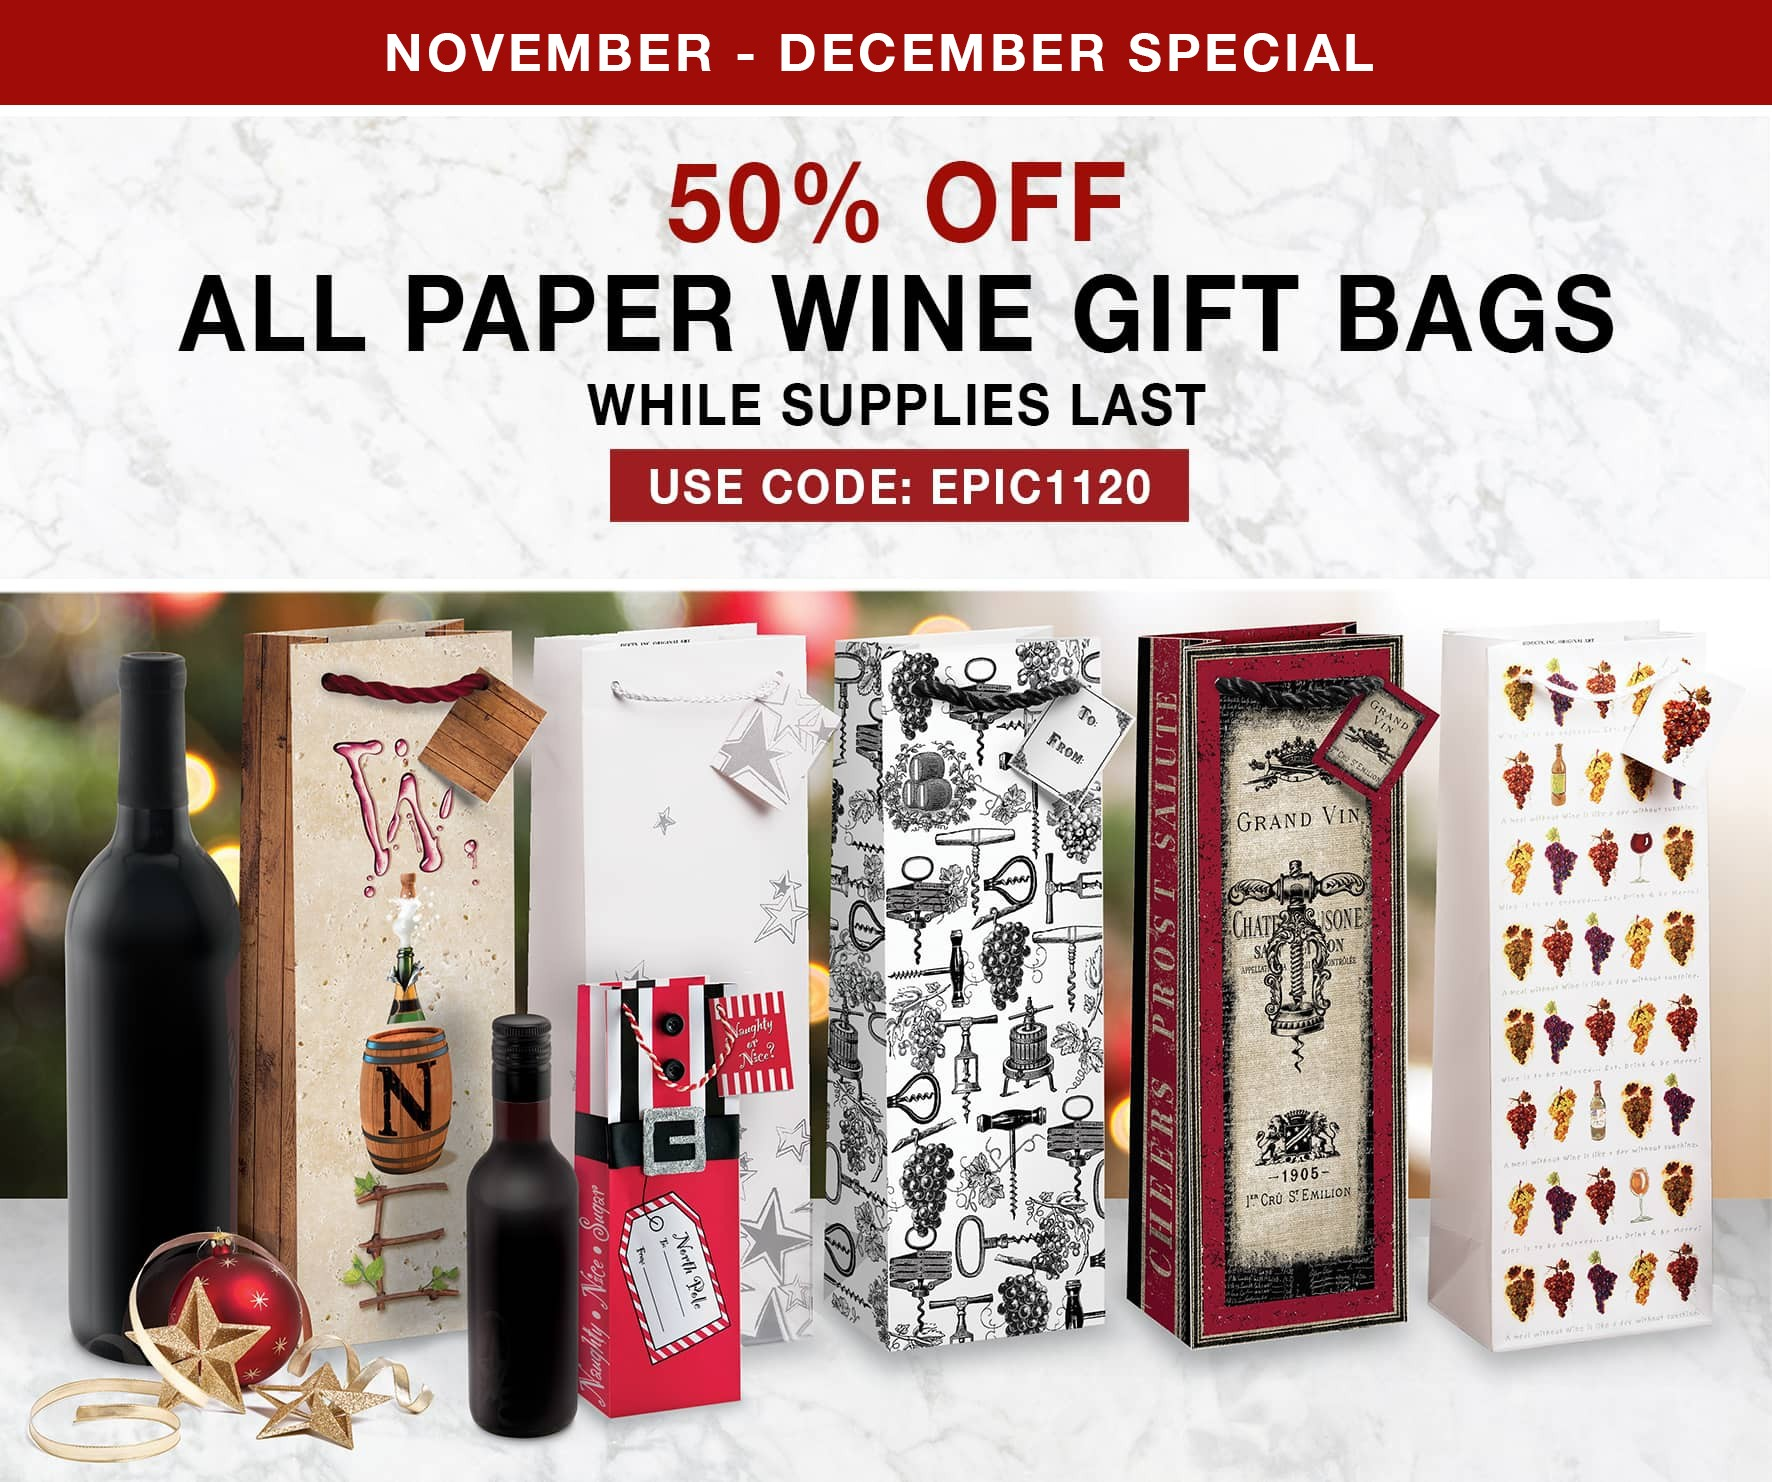 50% Off All Paper Wine Gift Bags - Use Code EPIC1120